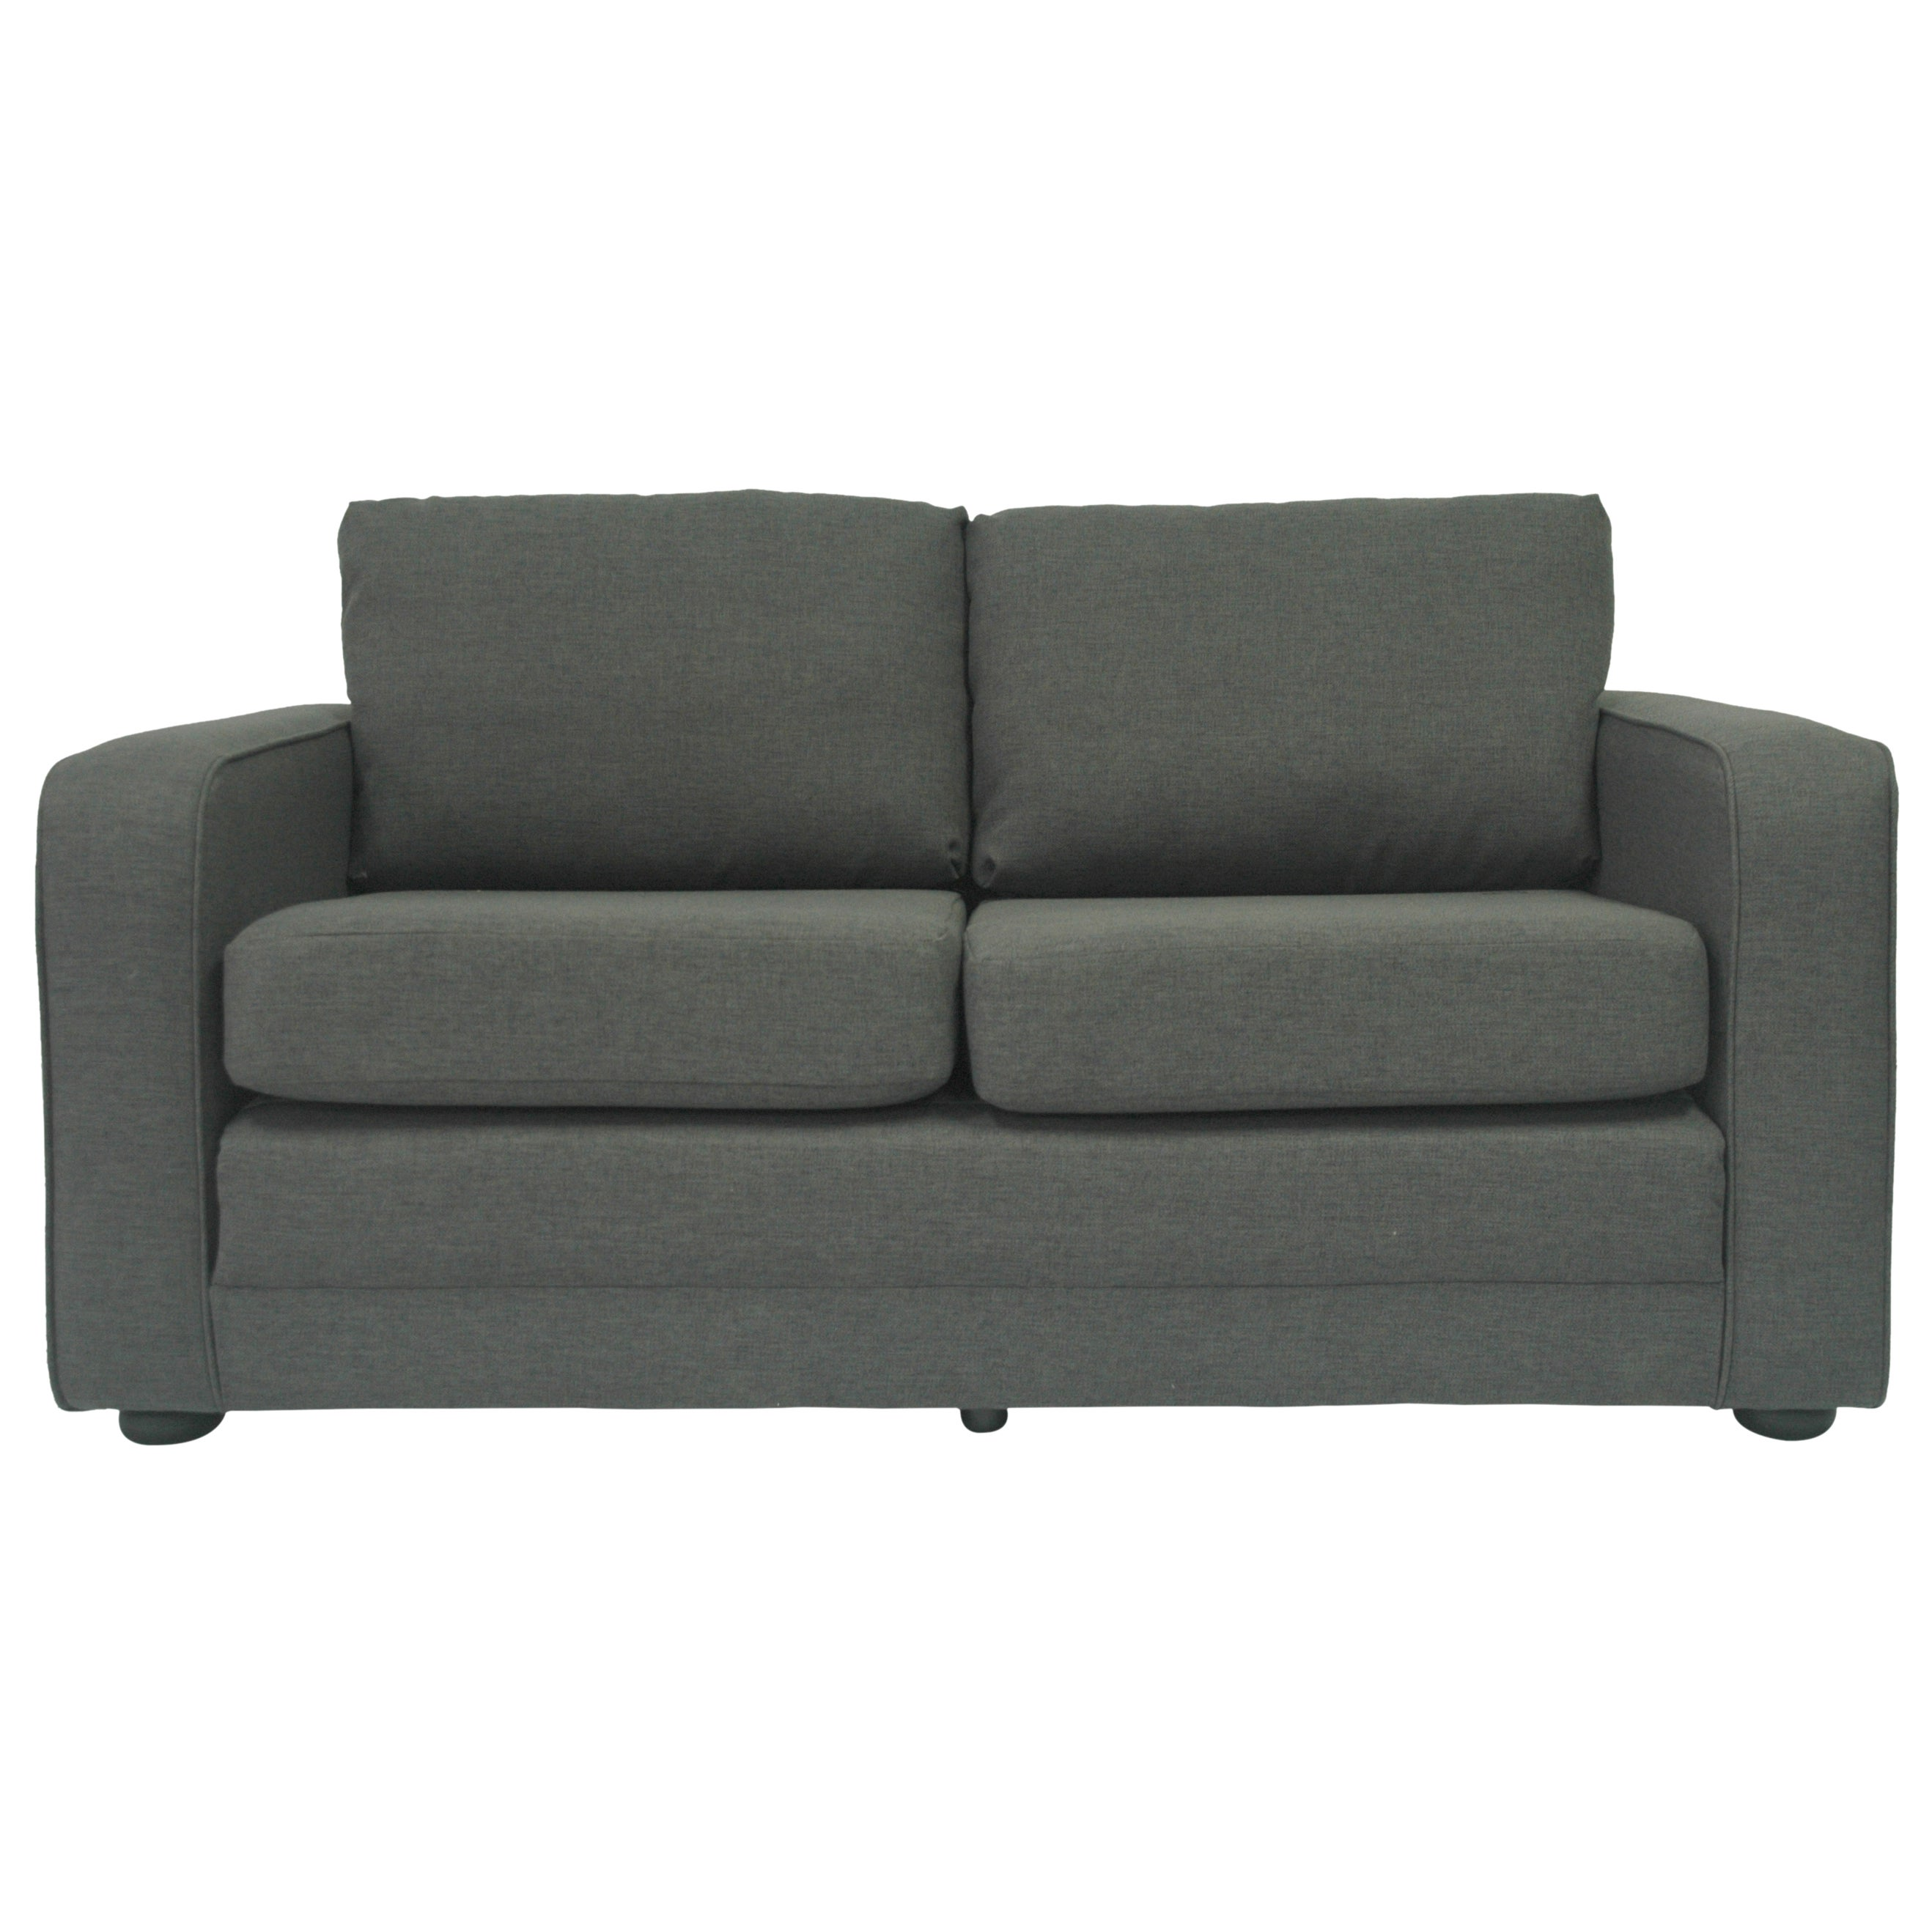 Strange Overman Newton Ultra Light Sofa Sleeper Loveseat Gmtry Best Dining Table And Chair Ideas Images Gmtryco